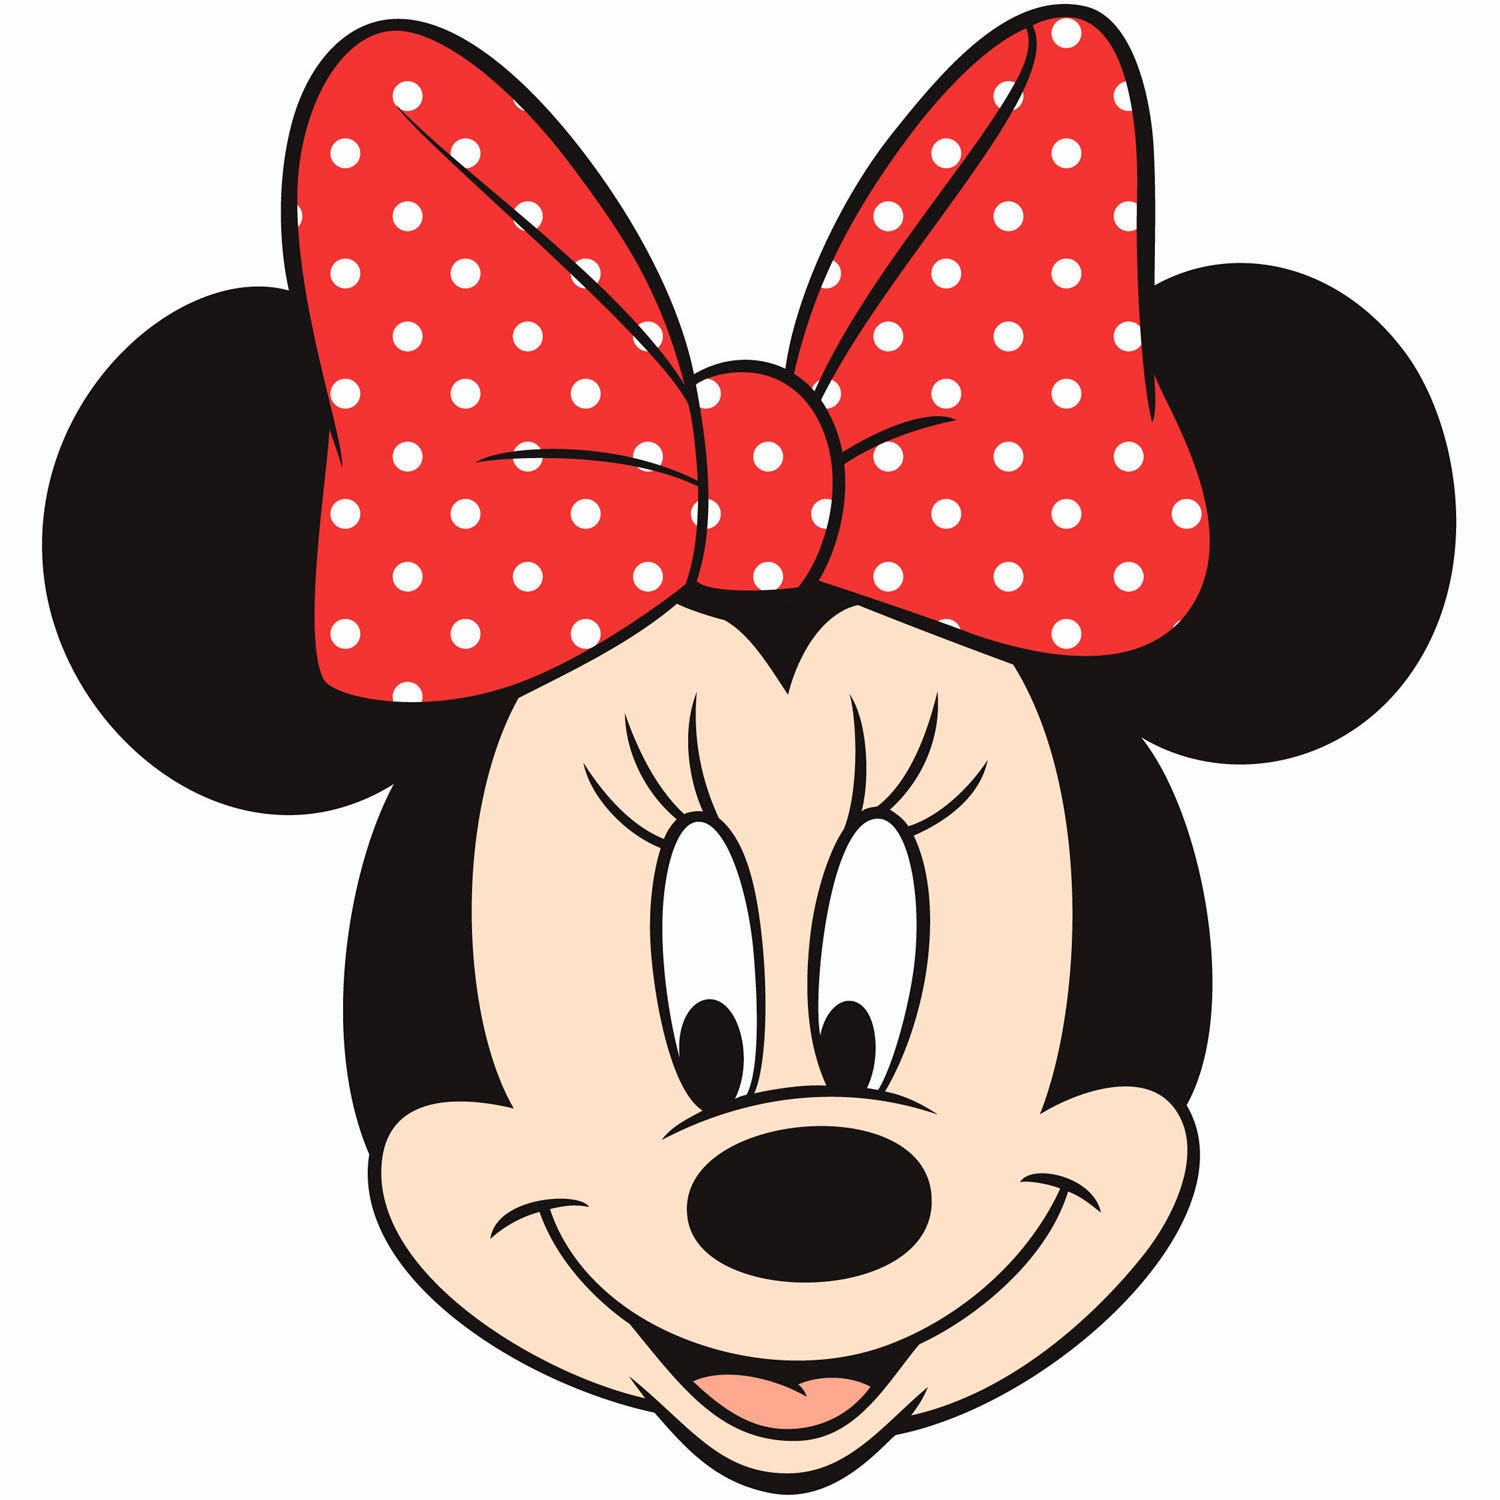 Minnie Mouse Wallpaper for iPhone